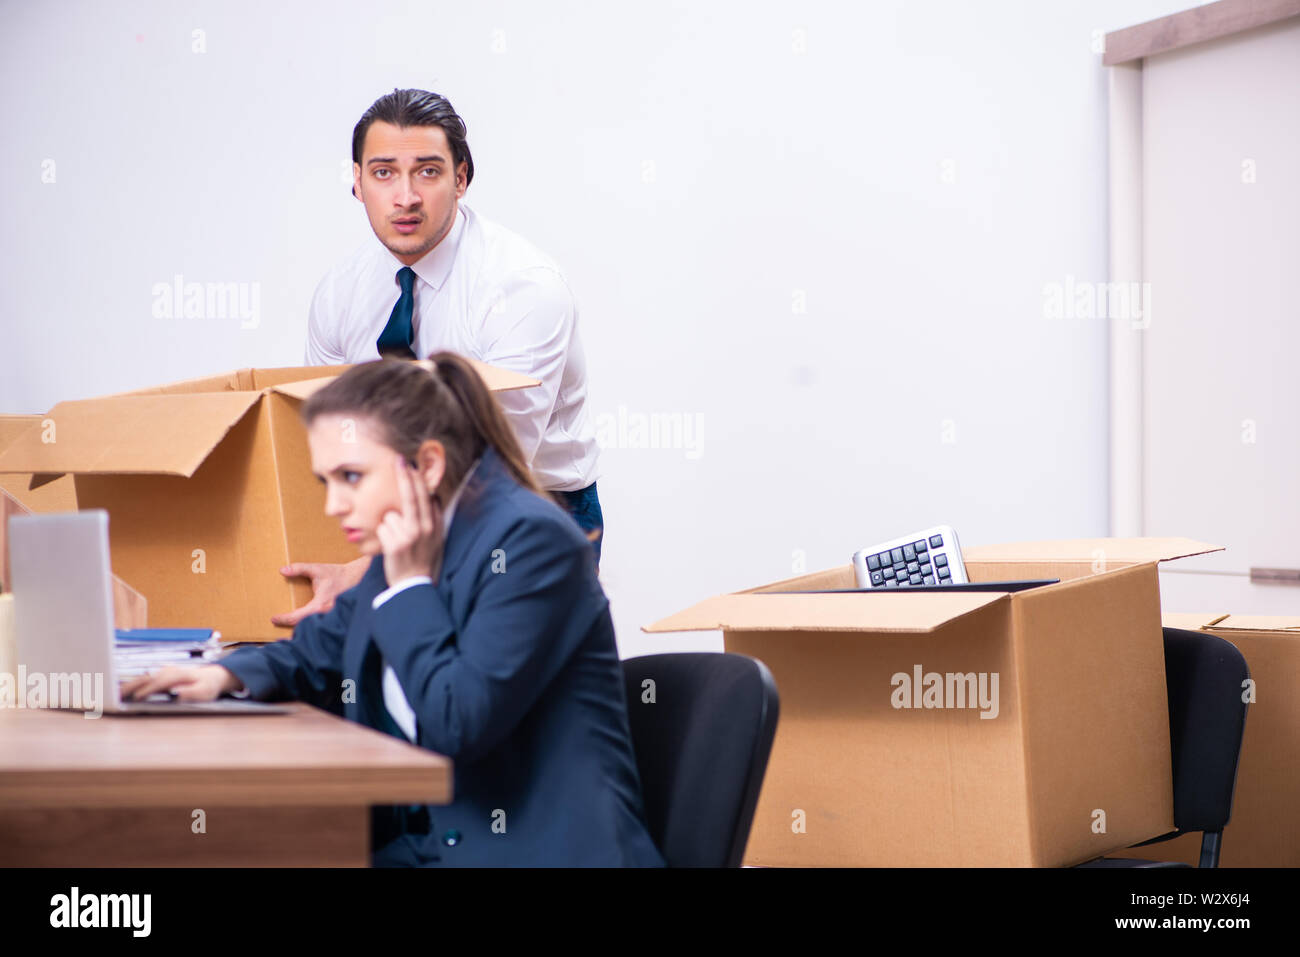 The two employees being fired from their work - Stock Image